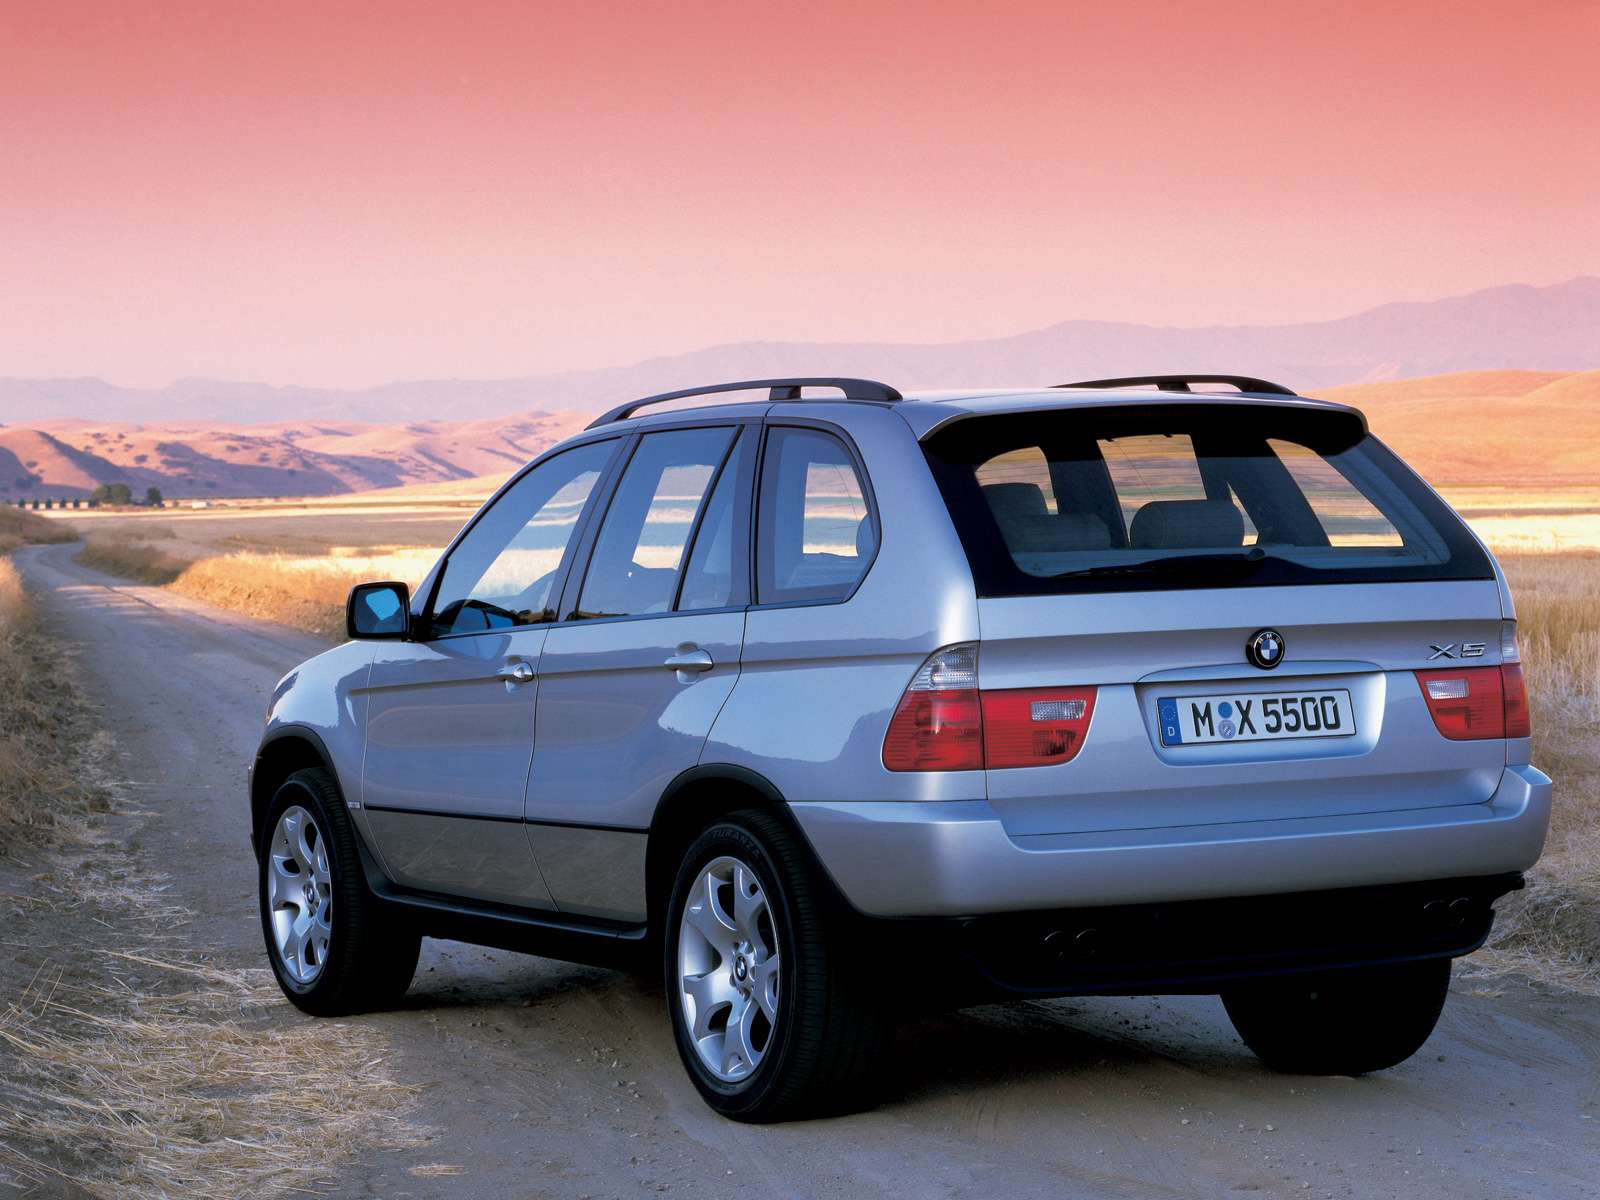 BMW X5 I (E53) 1999 - 2003 SUV 5 door #4